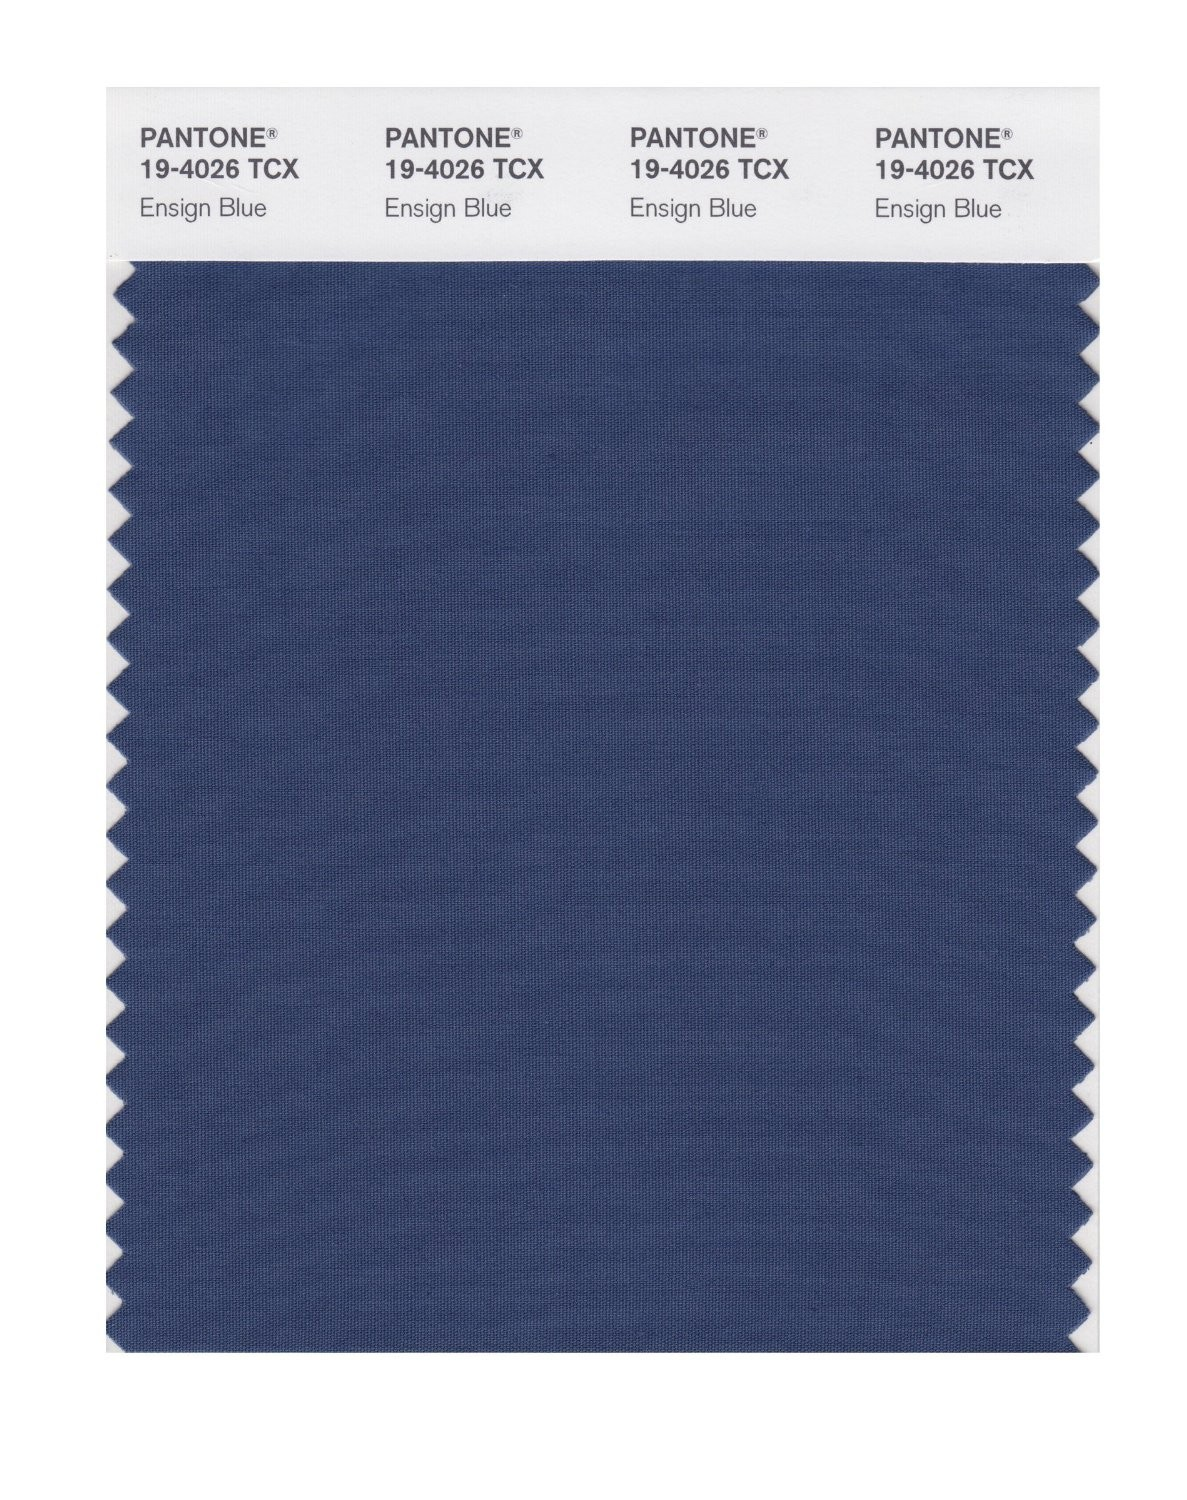 Pantone 19-4026 TCX Swatch Card Ensign Blue